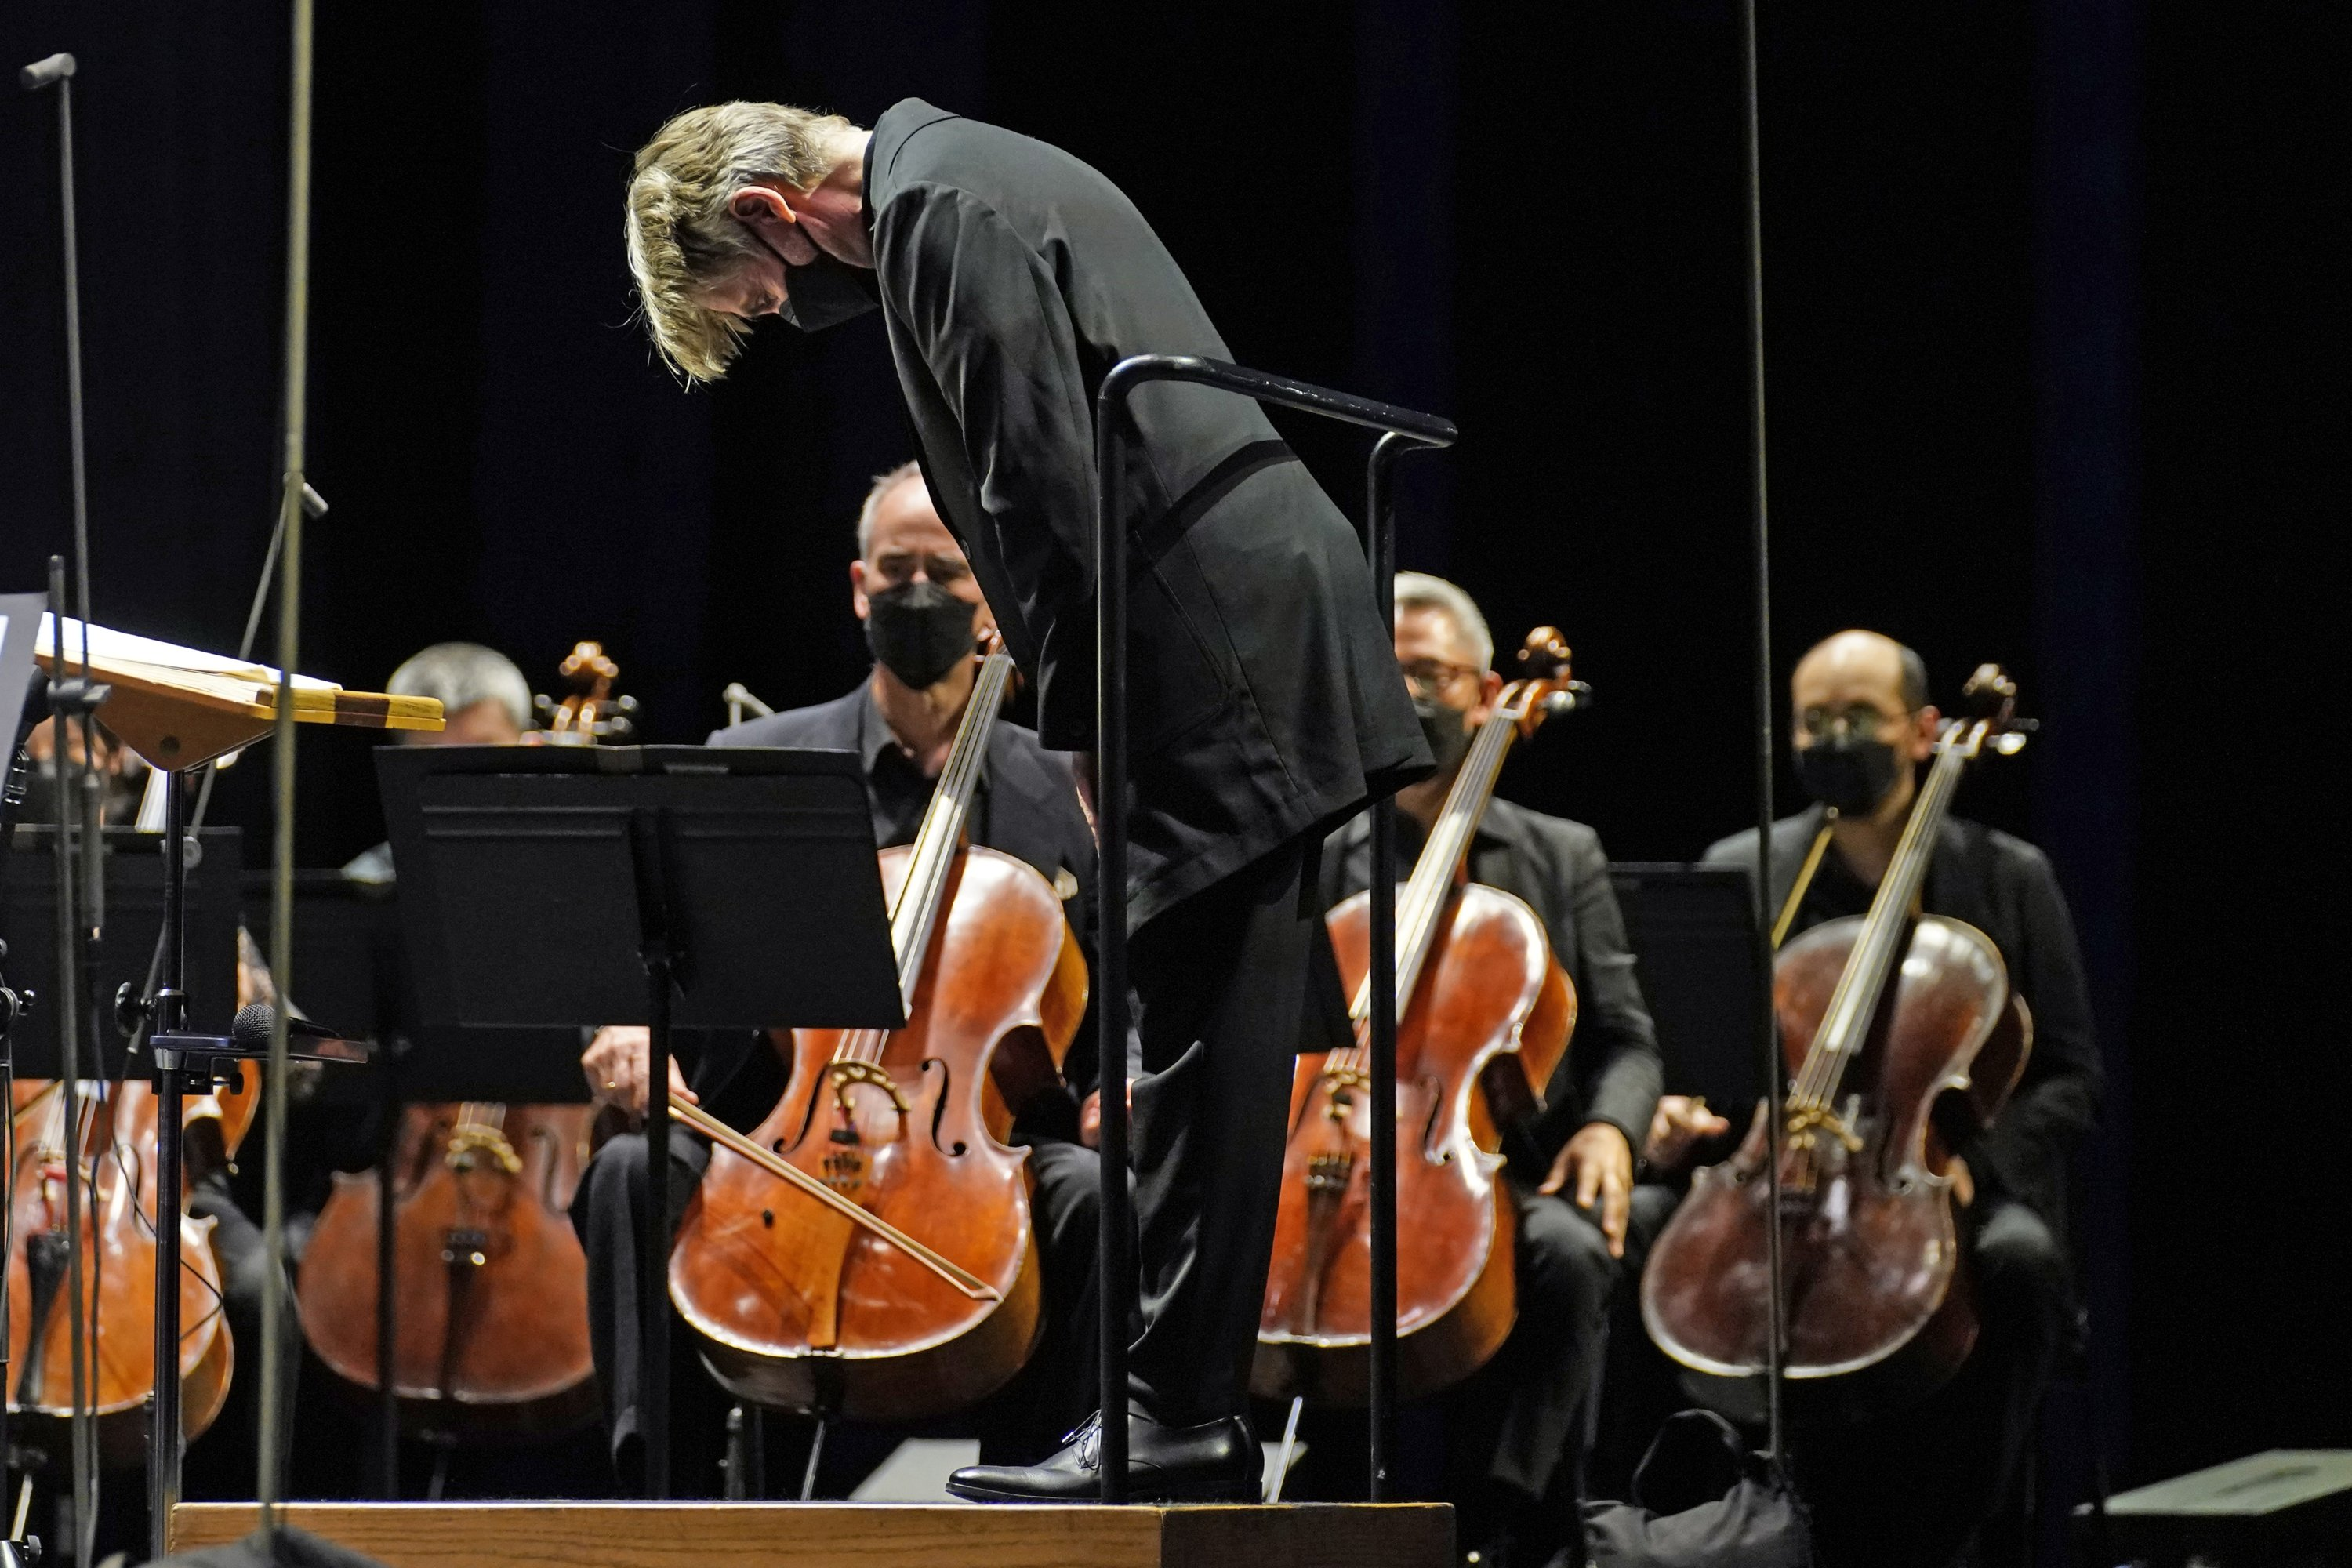 Guest conductor Essa-Pekka Salonen takes a bow before leading the New York Philharmonic in a performance in front of a live audience for the first time since March 10, 2020, at The Shed in Hudson Yards, New York, U.S., Wednesday, April 14, 2021. (AP Photo)